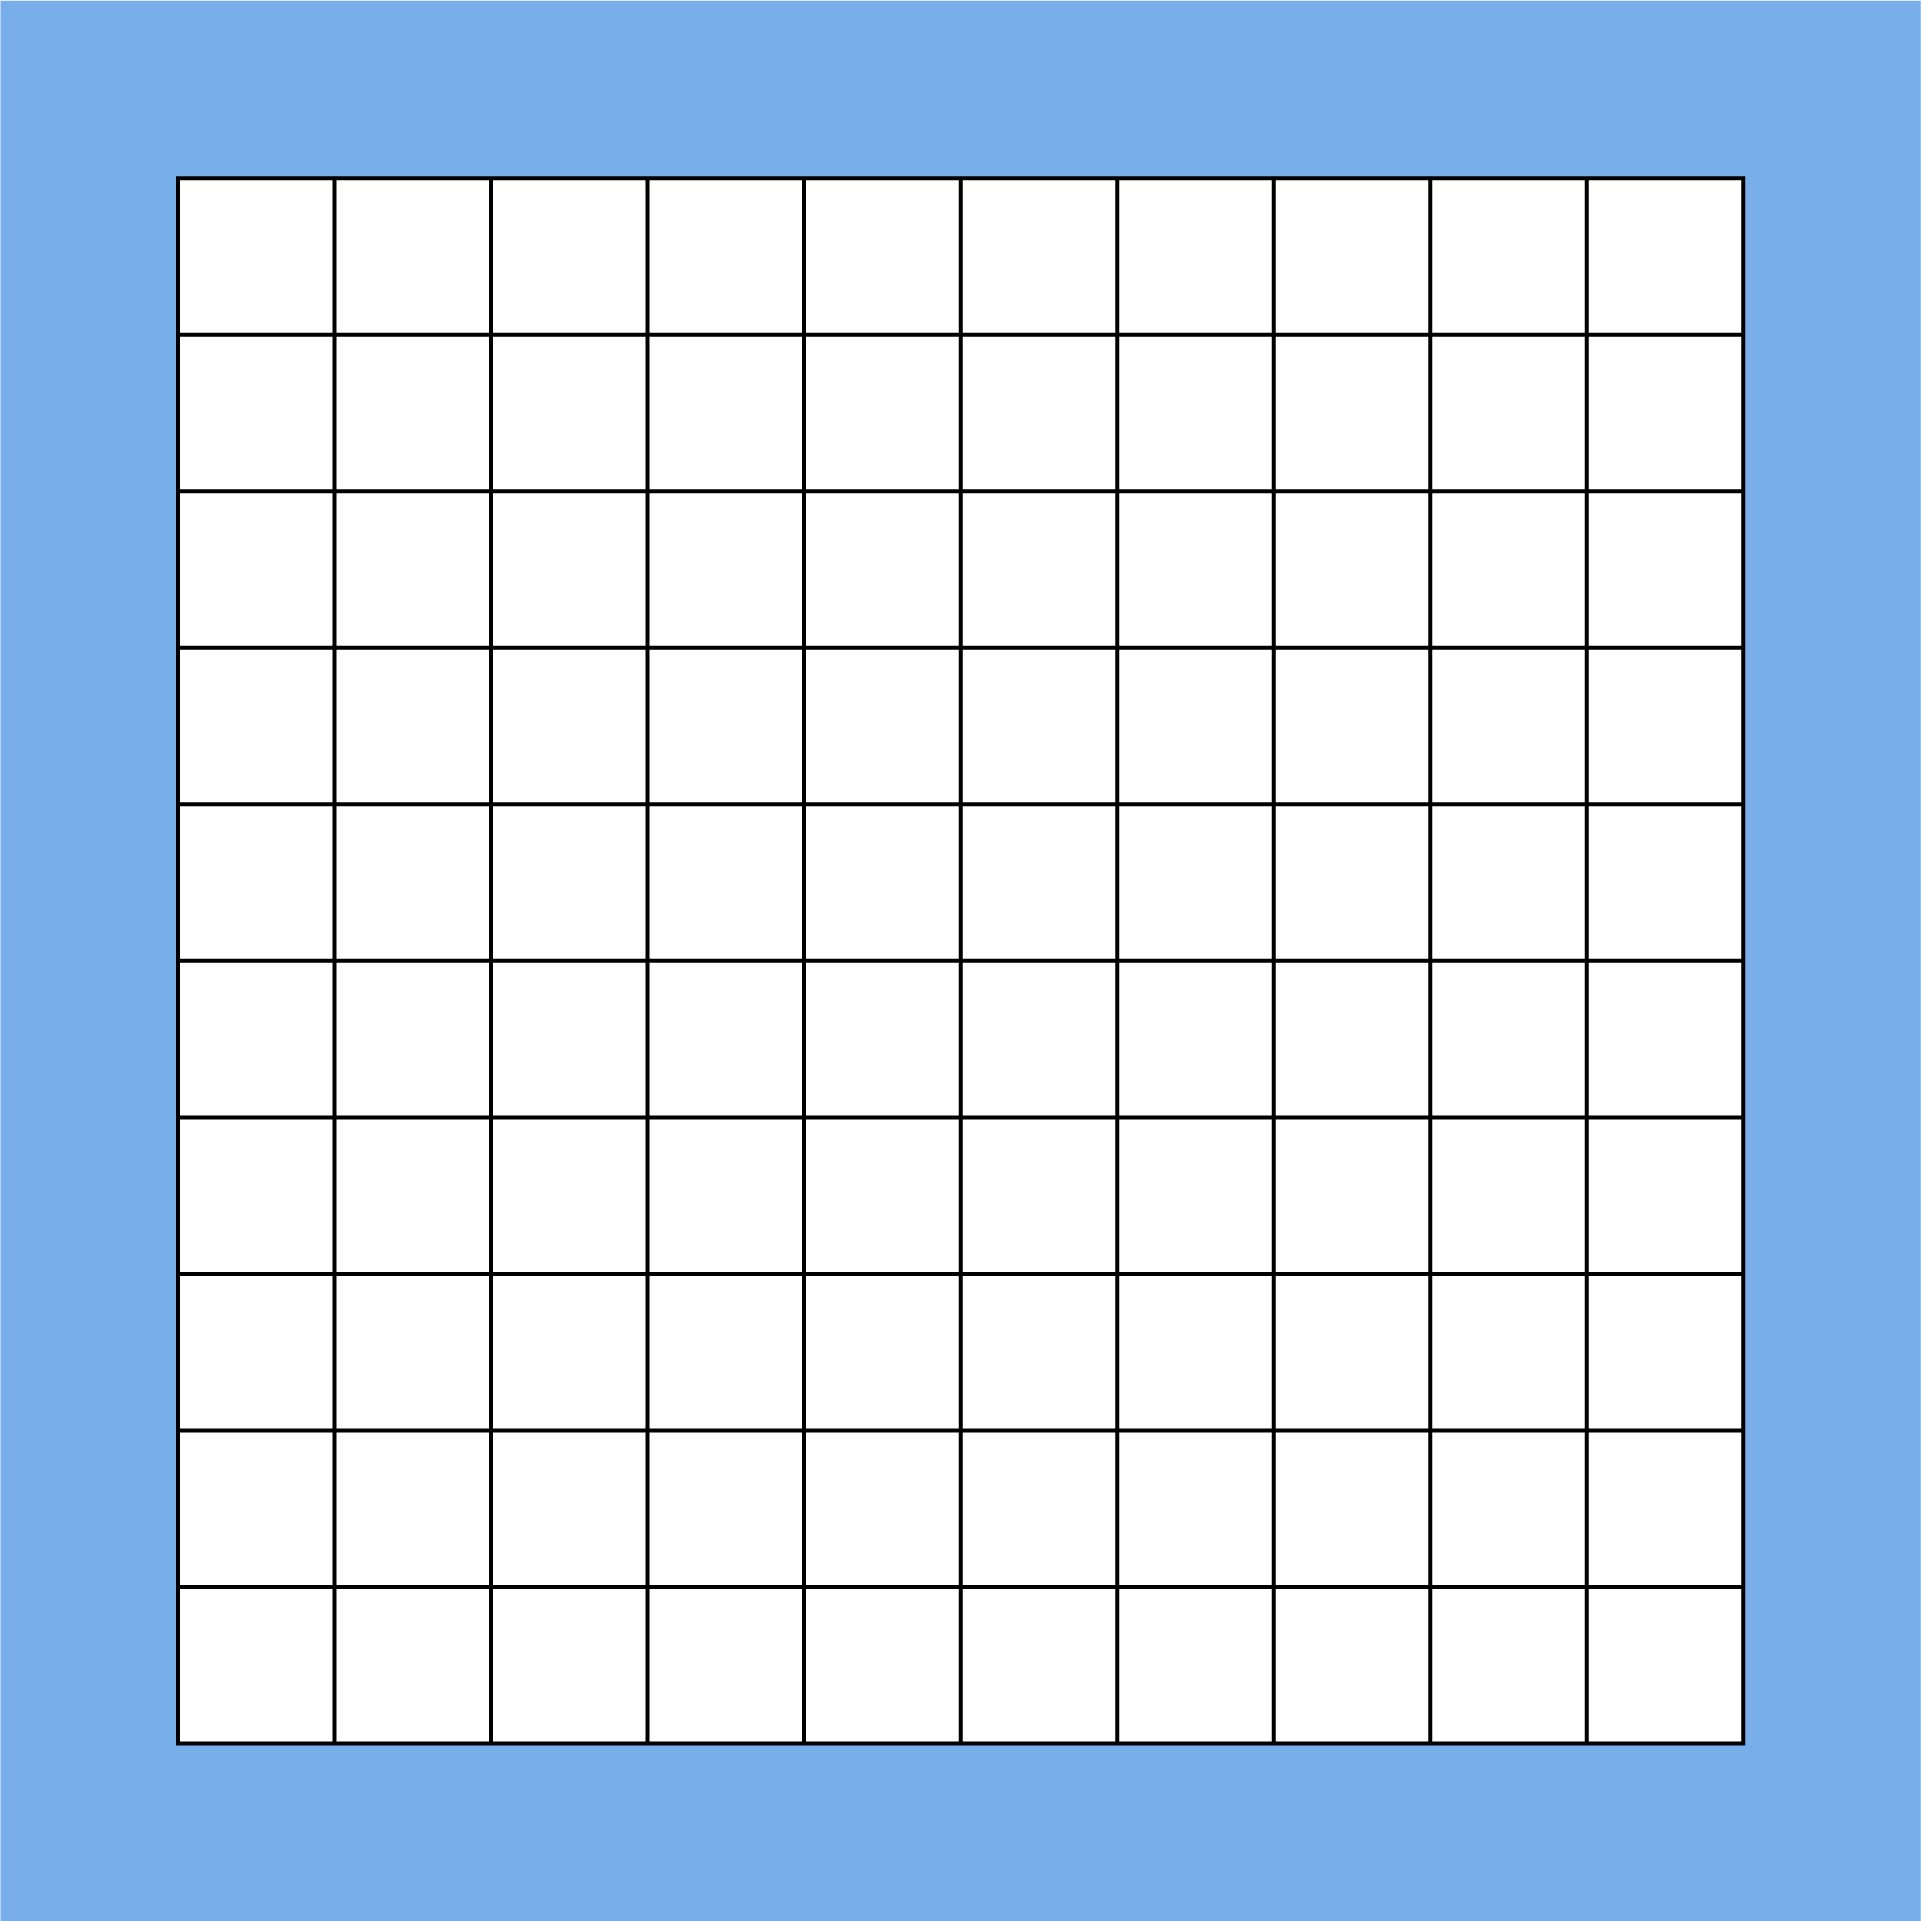 5 Images of Blank Hundredths Grids Printable